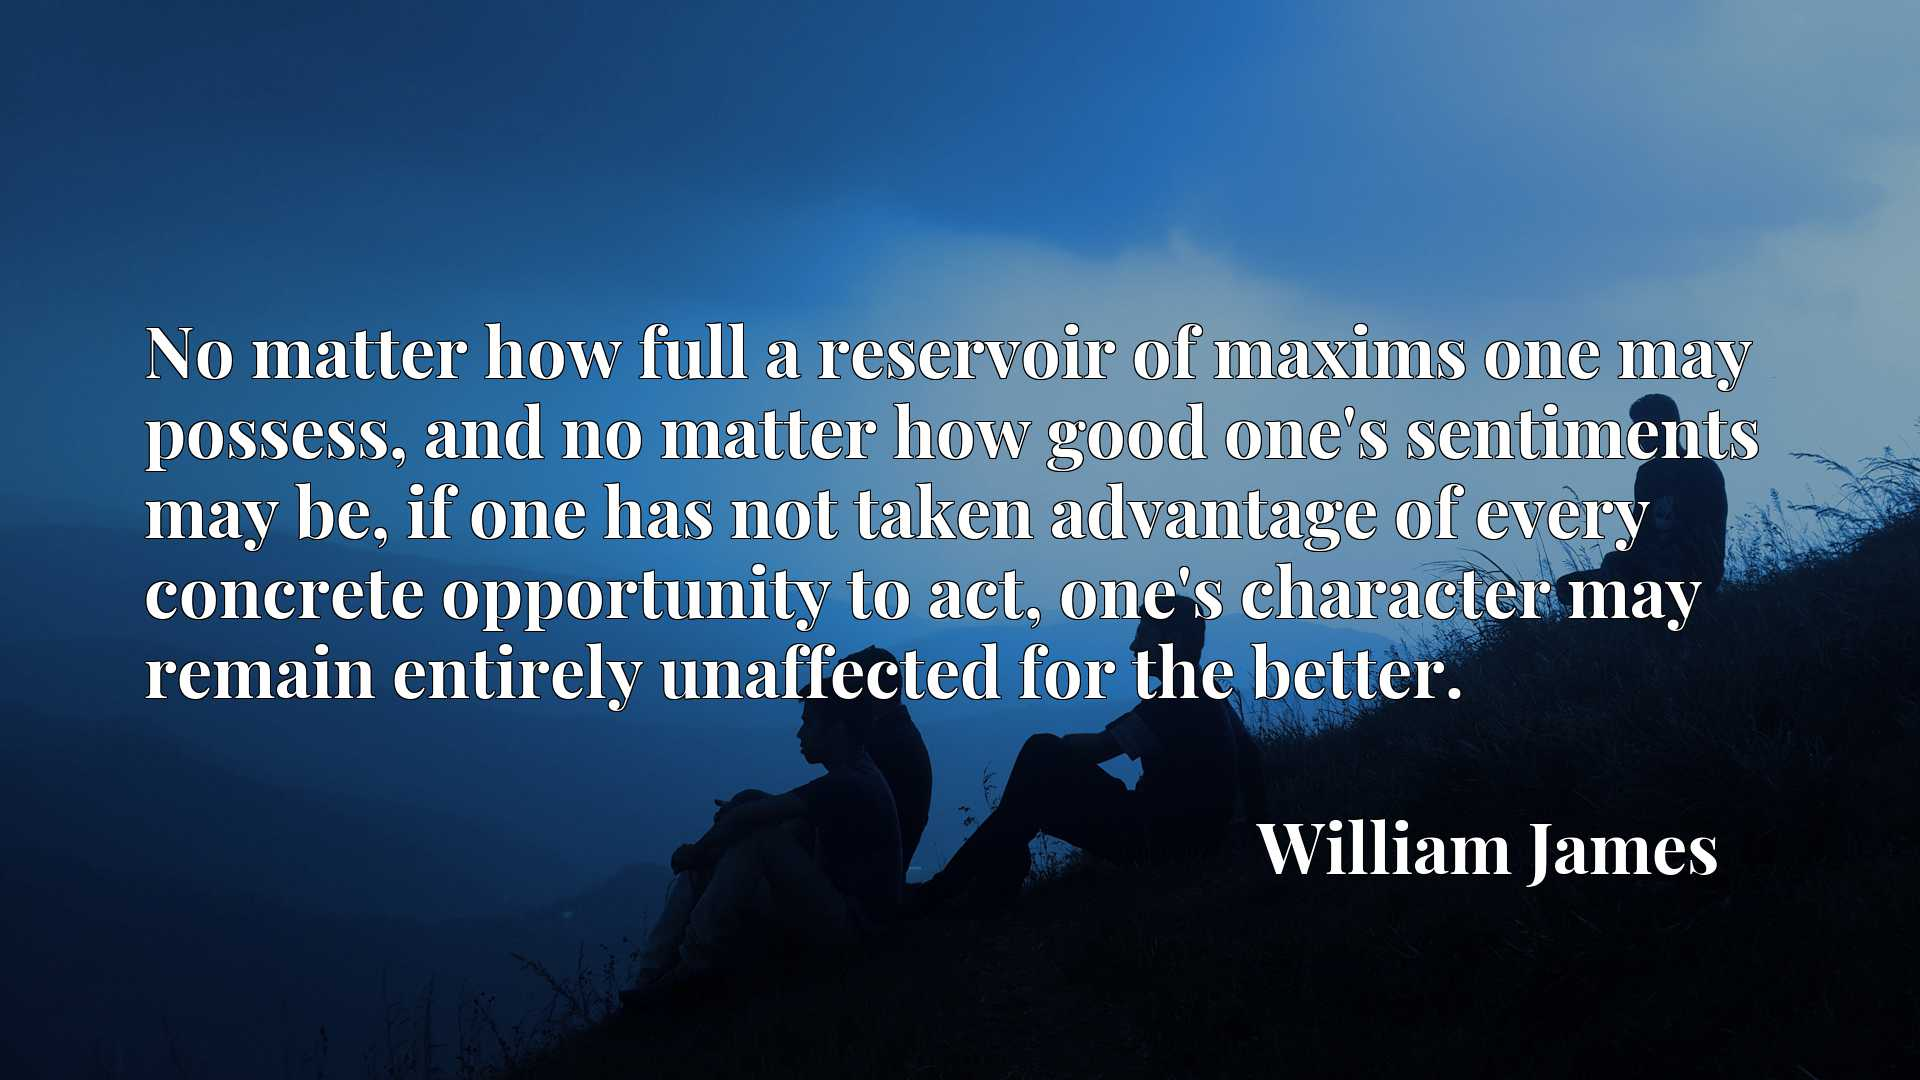 No matter how full a reservoir of maxims one may possess, and no matter how good one's sentiments may be, if one has not taken advantage of every concrete opportunity to act, one's character may remain entirely unaffected for the better.